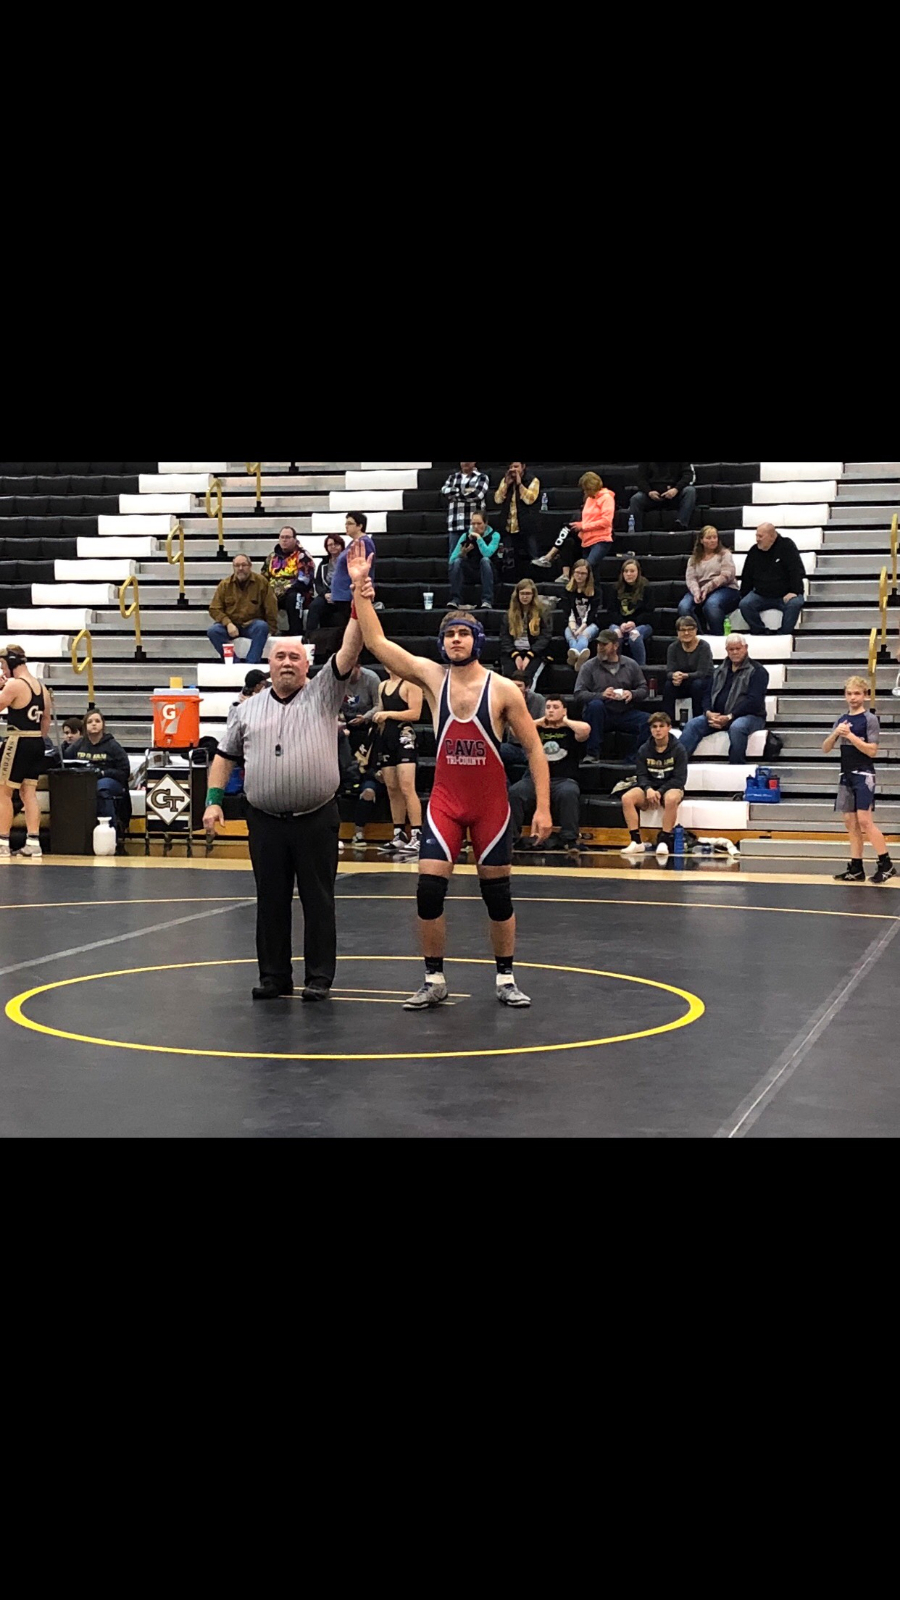 MWC Wrestling match moved